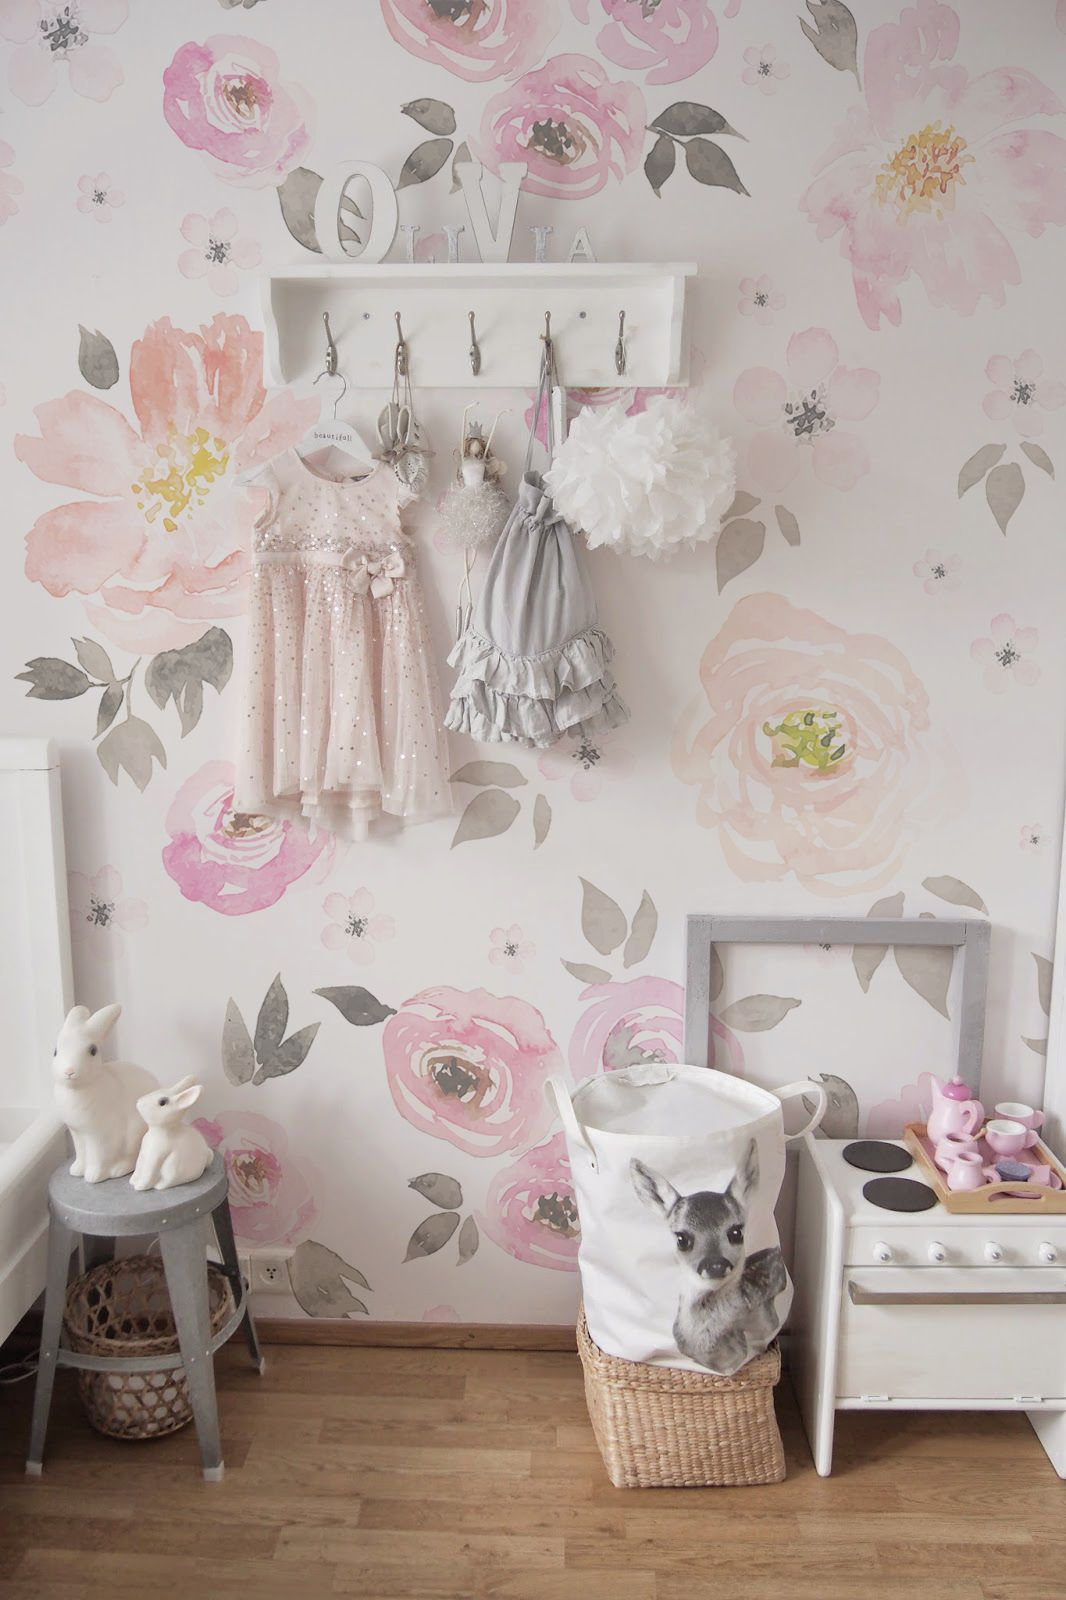 Lovely Vintage Floral Wallpaper Wall Mural Vintage Nursery Decor Vintage Floral Wallpapers Removable Wall Murals